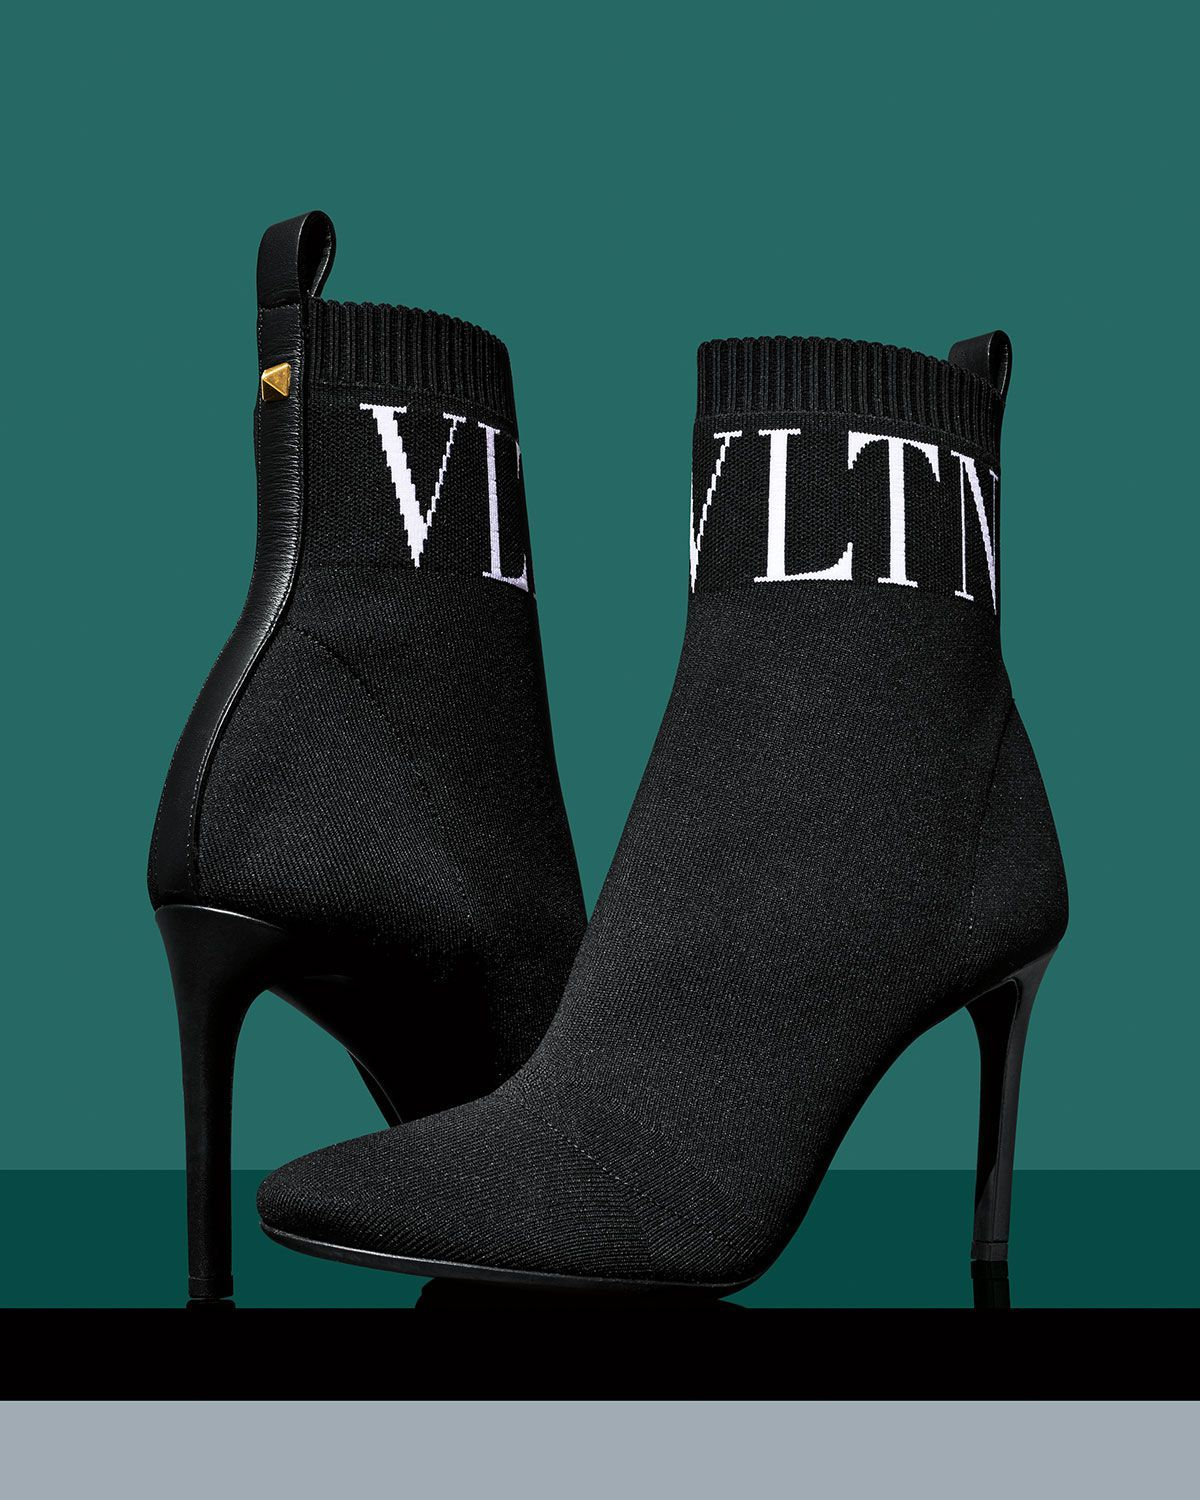 Valentino Booties: Monochrome VLTN Ankle Boots - High Heel Seek